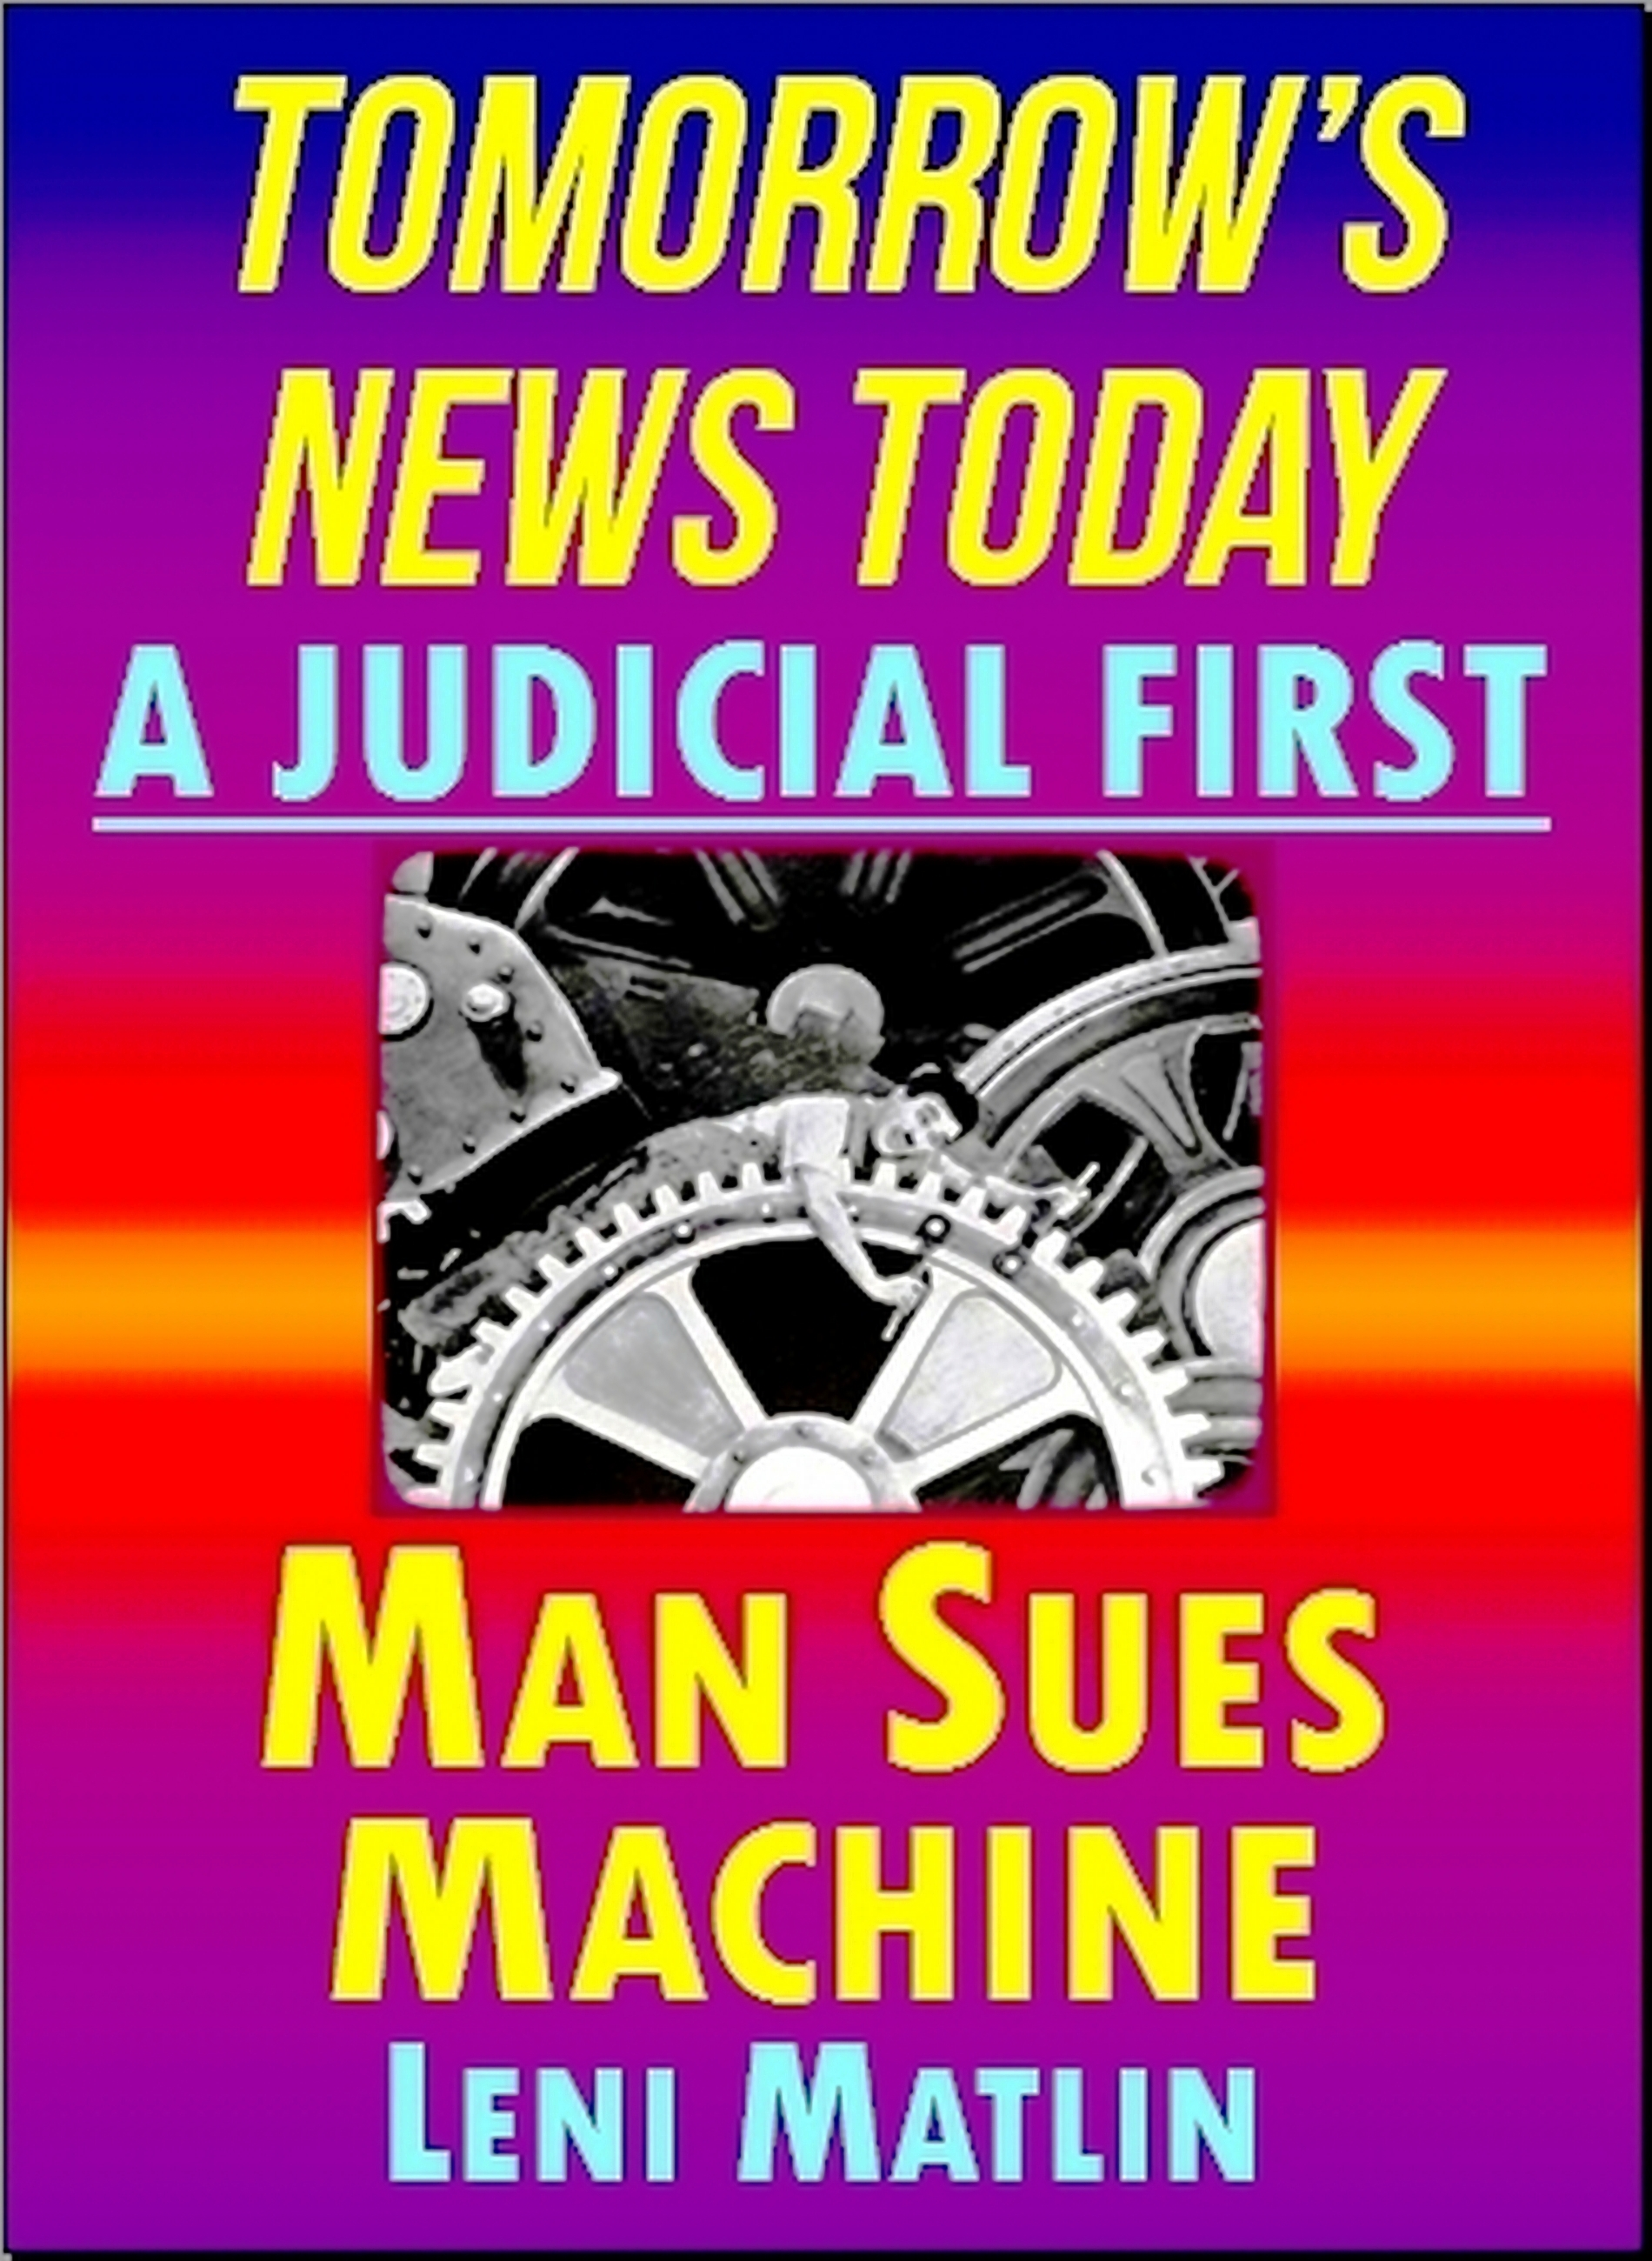 Man Sues Machine: A Judicial First